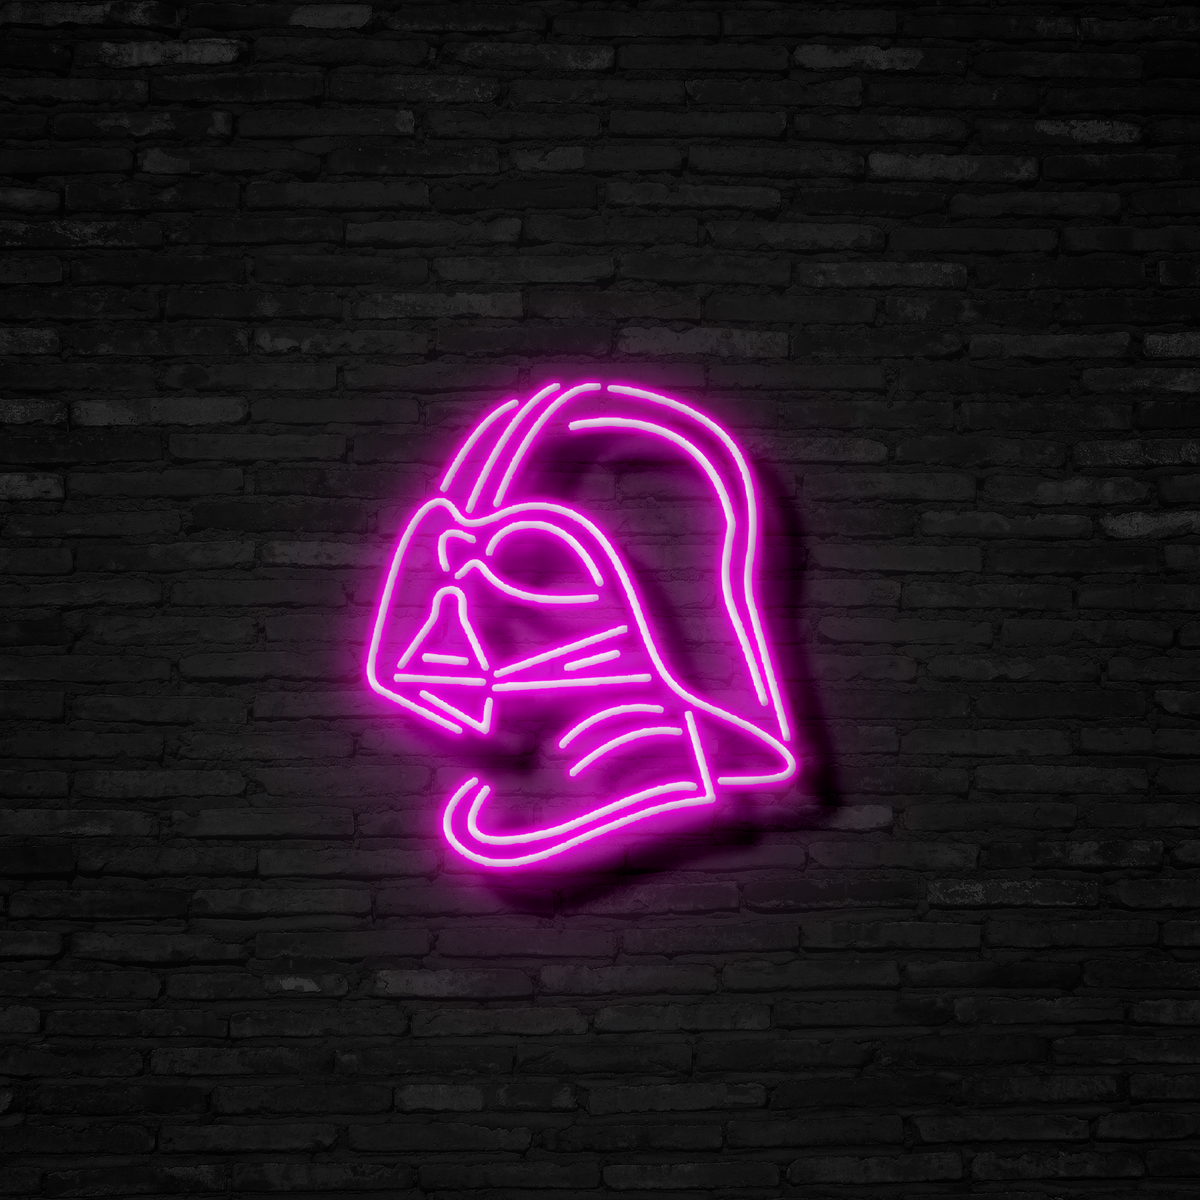 Star Wars Darth Vader - Neon Sign